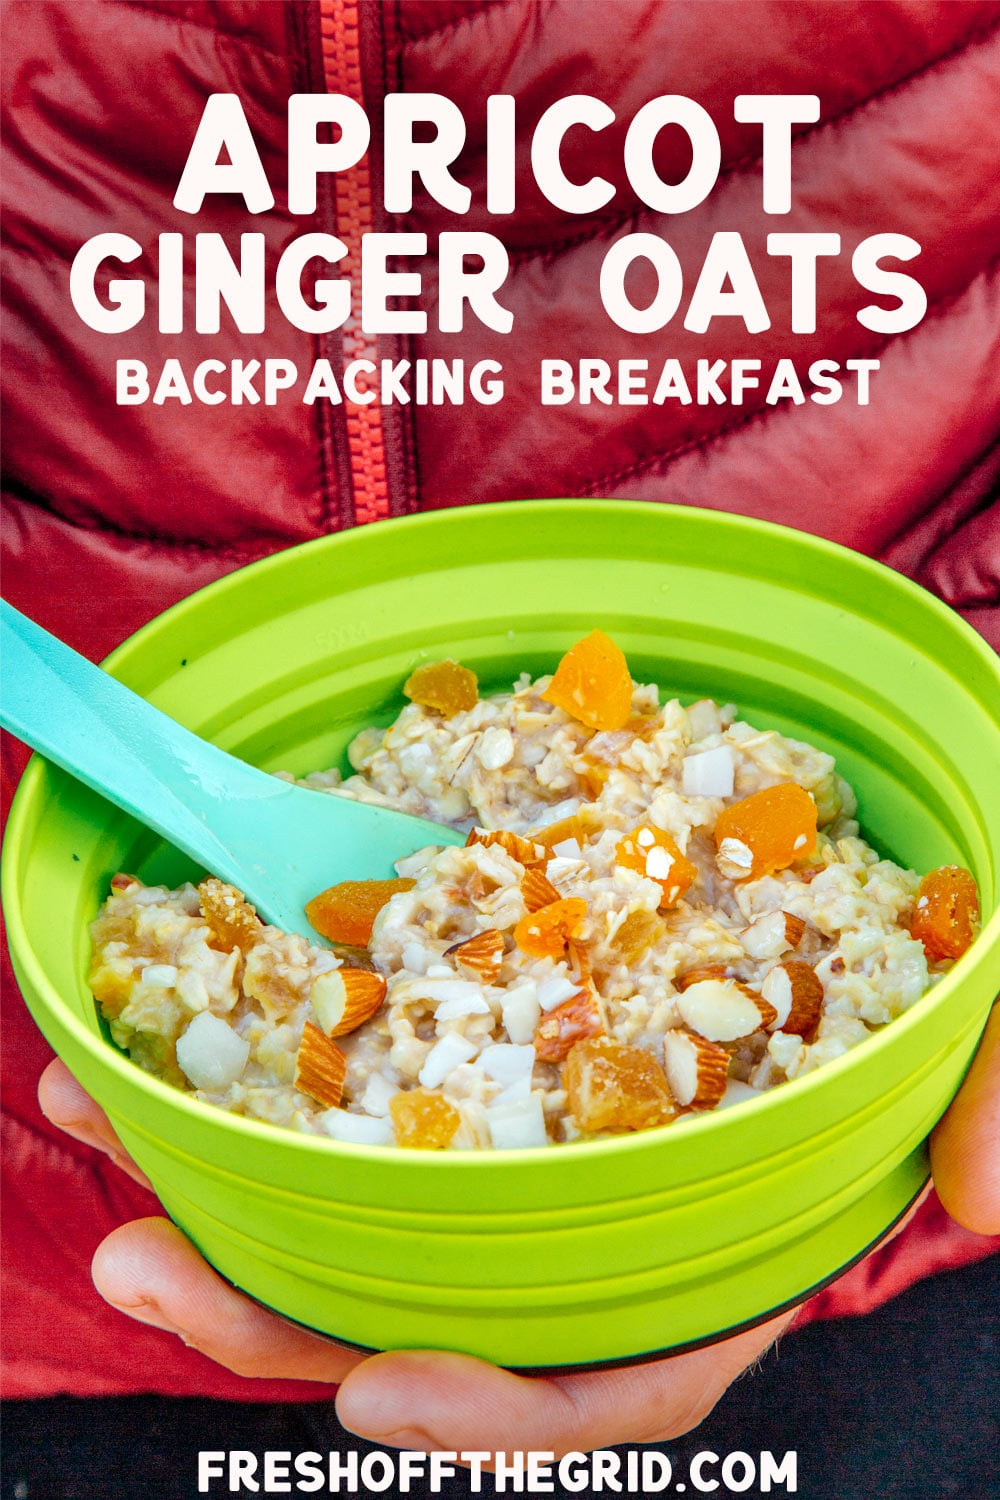 With an exotic sweet and spice combo, this Apricot Ginger Oatmeal is a great way to shake up your morning oats on your next backpacking trip. This easy backpacking breakfast can be assembled at home before your trip and cooks in one pot in less than 10 minutes in camp! via @freshoffthegrid